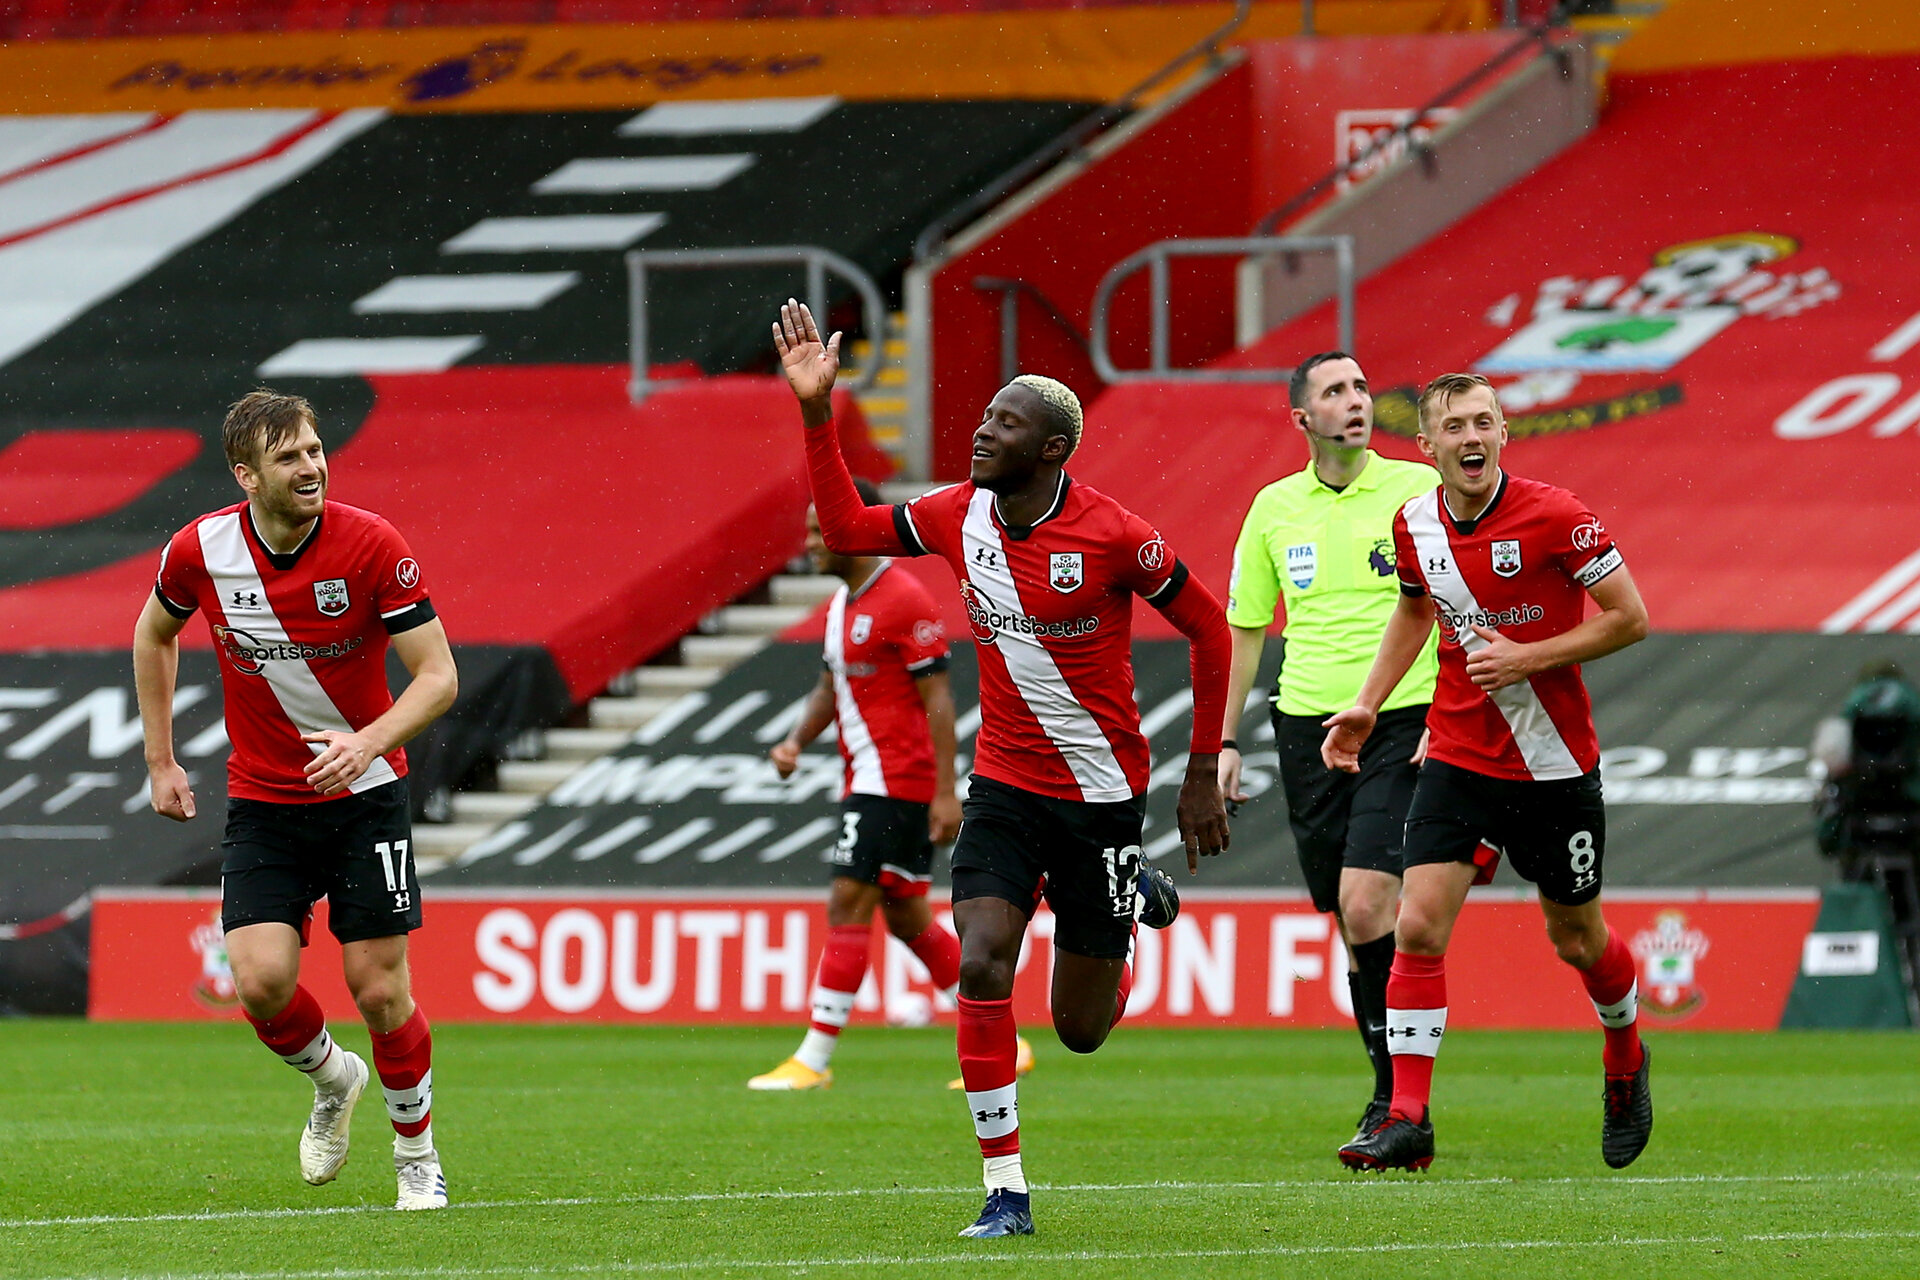 SOUTHAMPTON, ENGLAND - OCTOBER 04: Moussa Djenepo (center) of Southampton goal celebration during the Premier League match between Southampton and West Bromwich Albion at St Mary's Stadium on October 4, 2020 in Southampton, United Kingdom. Sporting stadiums around the UK remain under strict restrictions due to the Coronavirus Pandemic as Government social distancing laws prohibit fans inside venues resulting in games being played behind closed doors. (Photo by Matt Watson/Southampton FC via Getty Images)